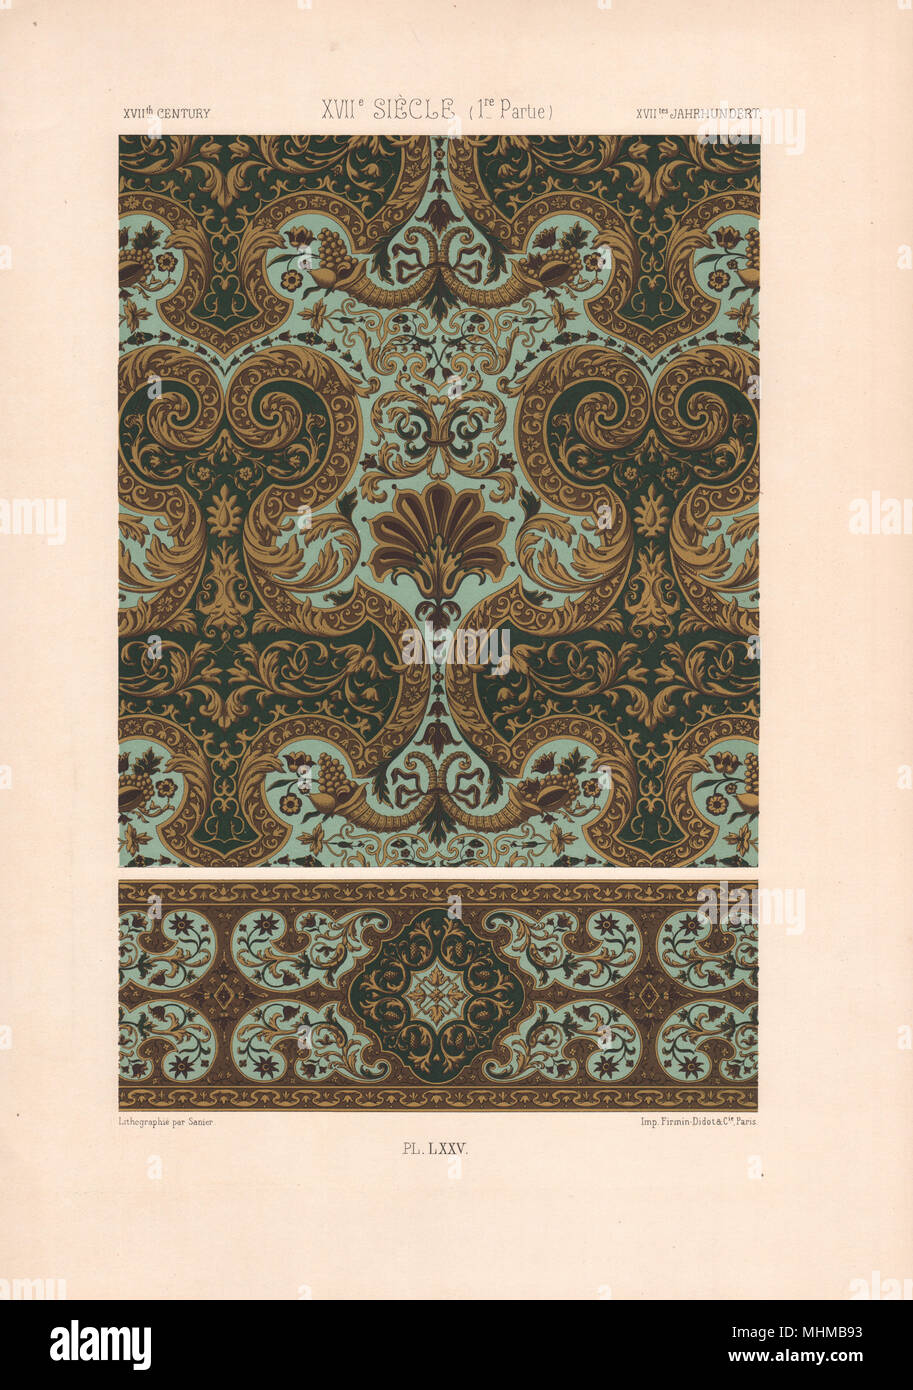 RACINET ORNEMENT POLYCHROME 75 17th century Baroque arts patterns motifs c1885 - Stock Image